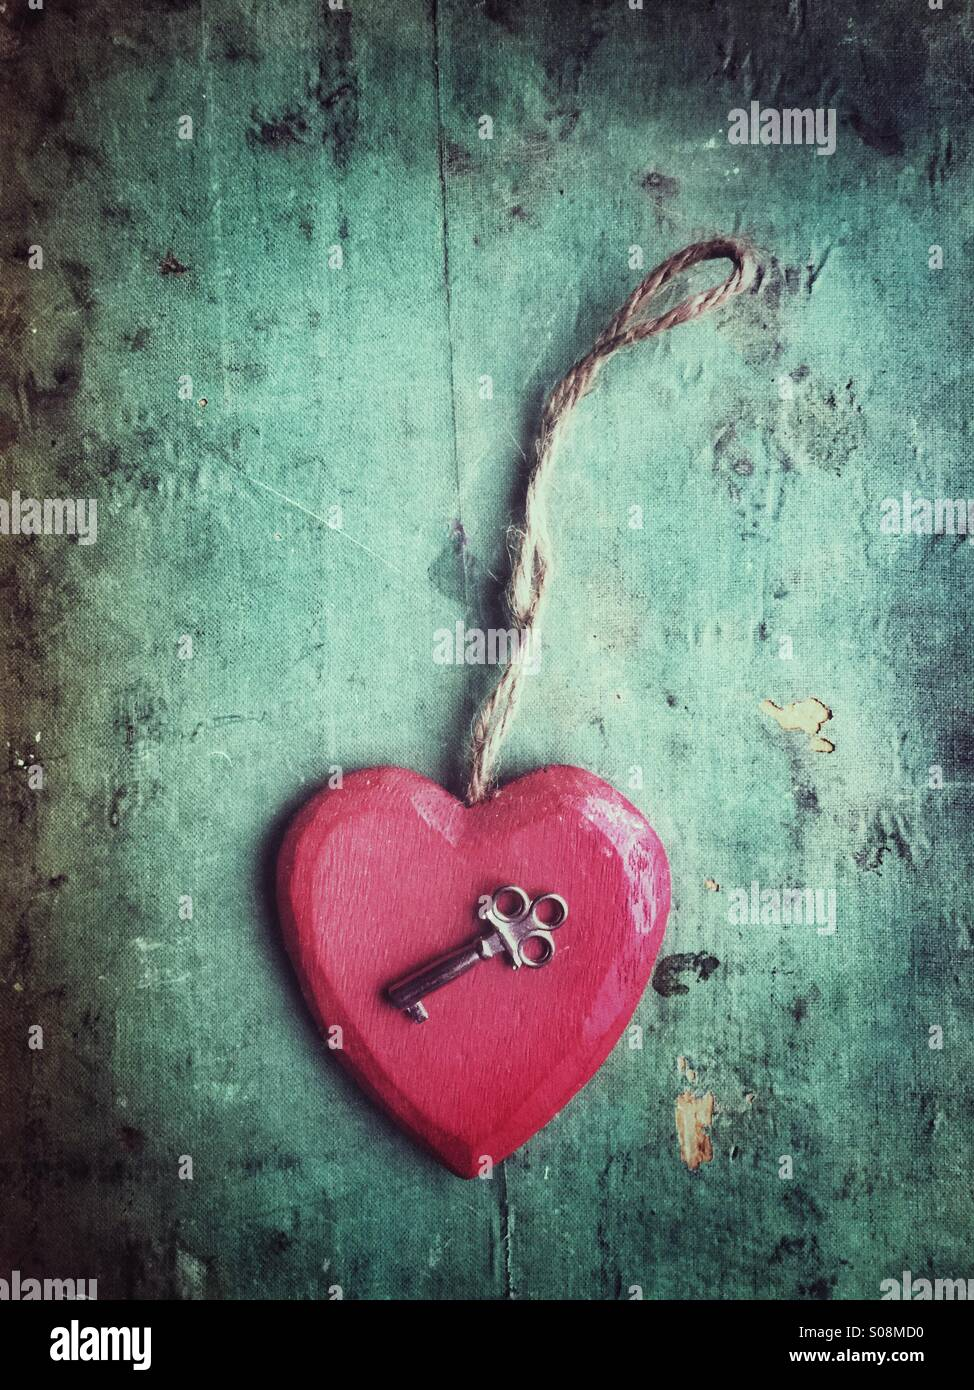 Red wooden heart and a key - Stock Image